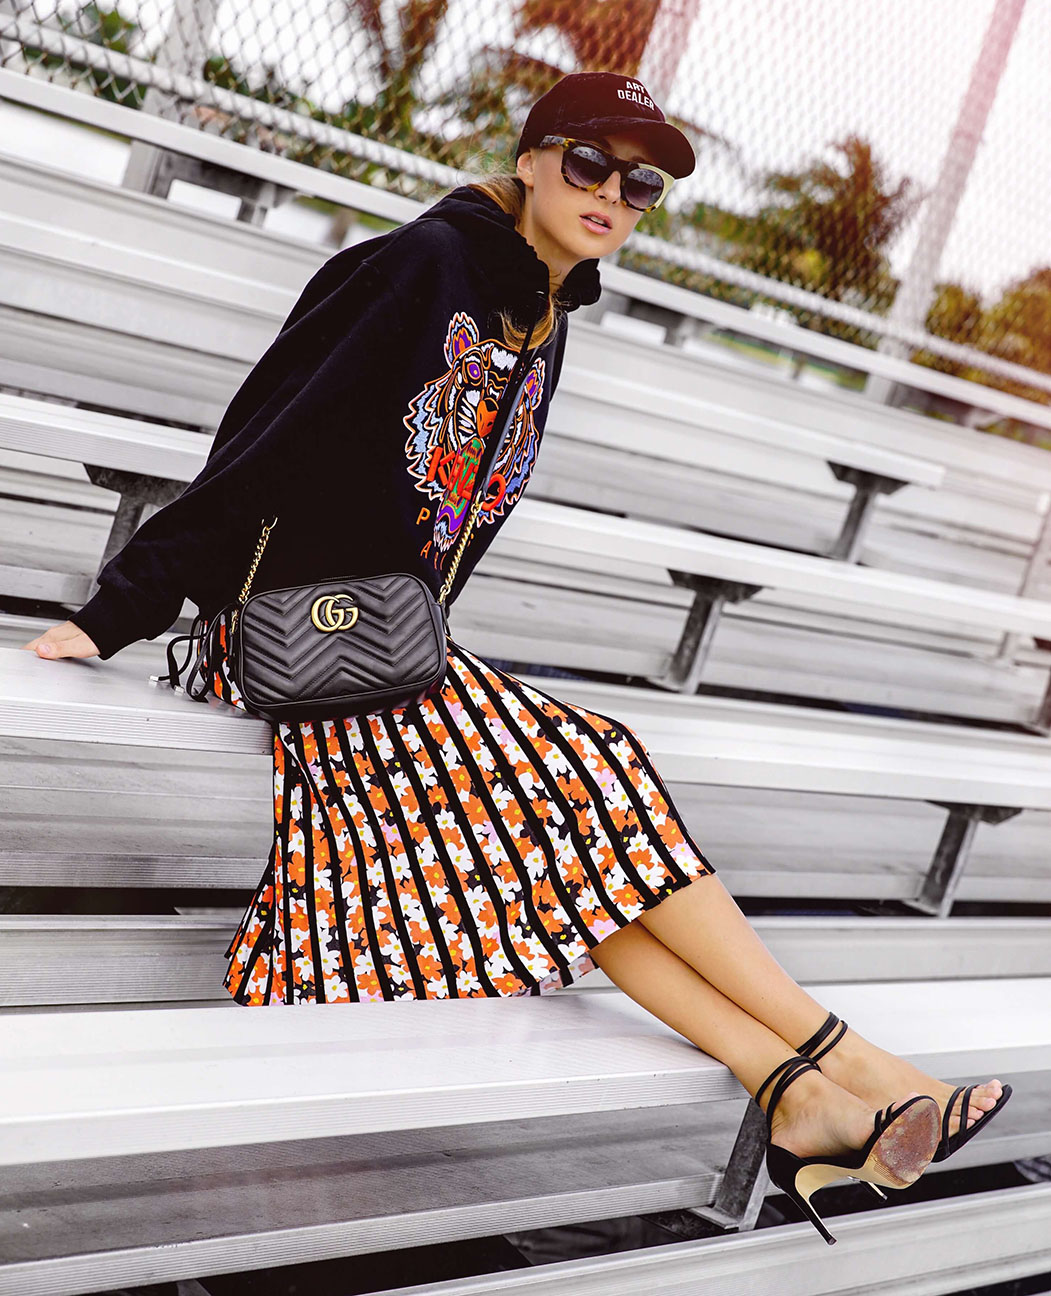 orange-midi-skirt-vertical-stripe-black-sweater-sweatshirt-hoodie-graphic-black-bag-blonde-sun-hat-cap-black-shoe-sandalh-fall-winter-lunch.jpg